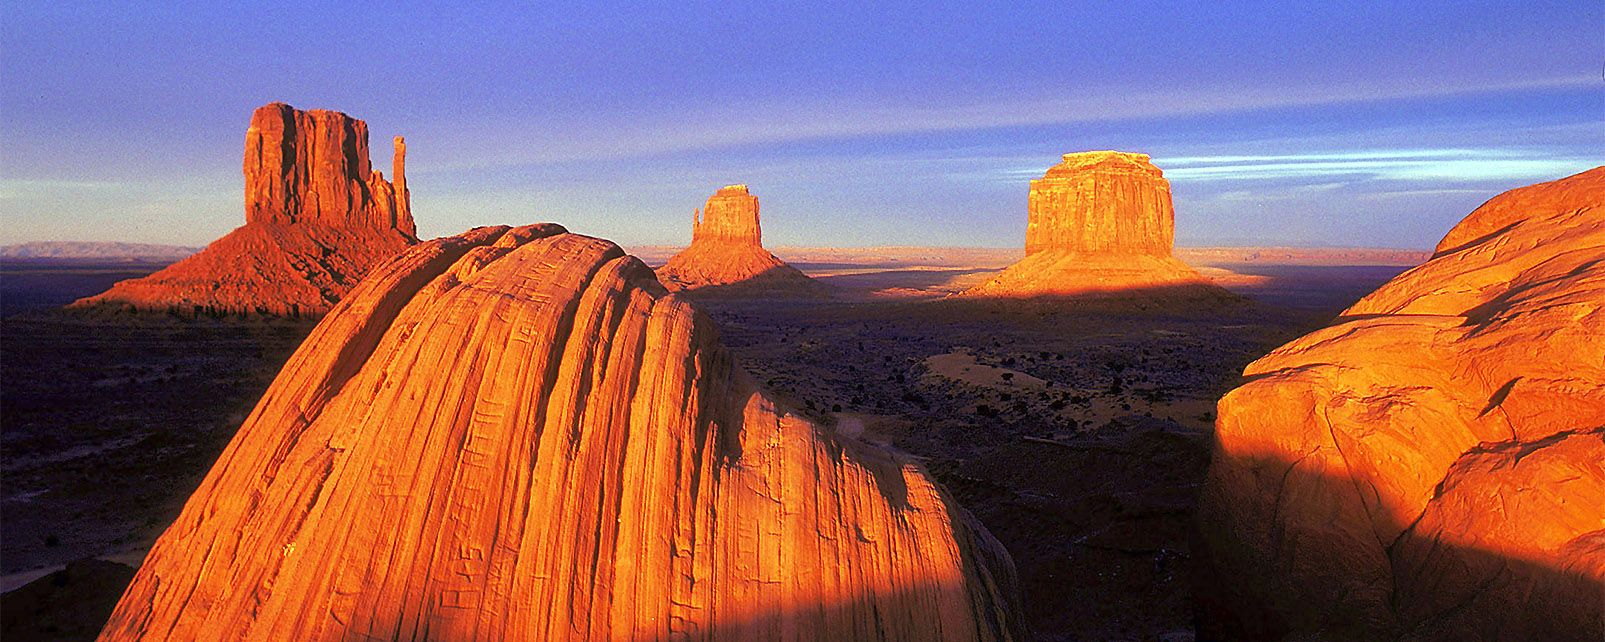 Monument Valley Western Usa United States Of America